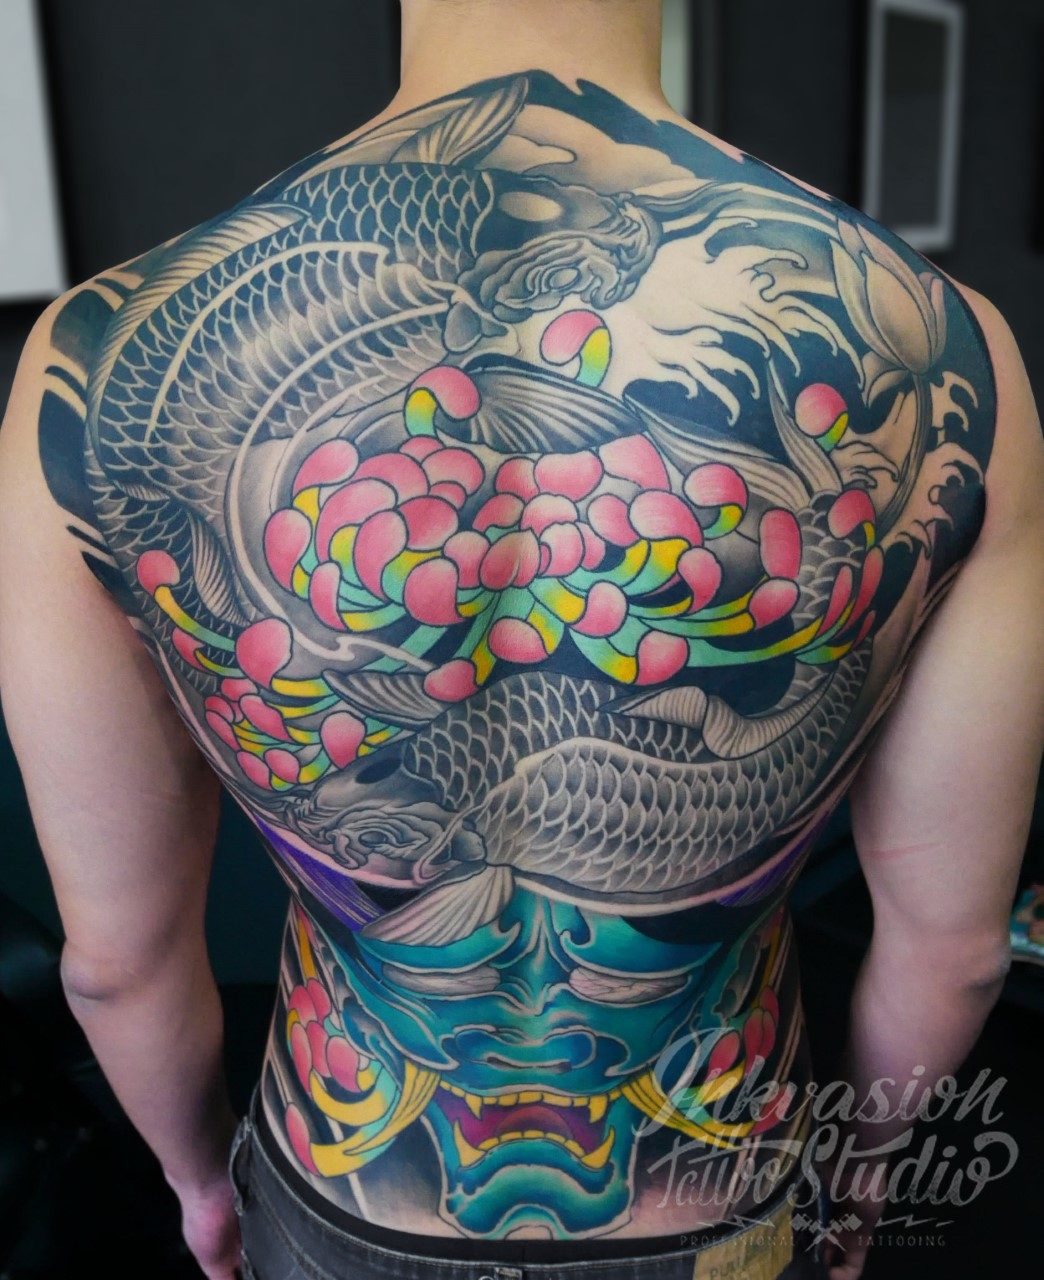 891f04303 Inkvasion Tattoo Studio Delivers High Quality Art For Your Skin ...